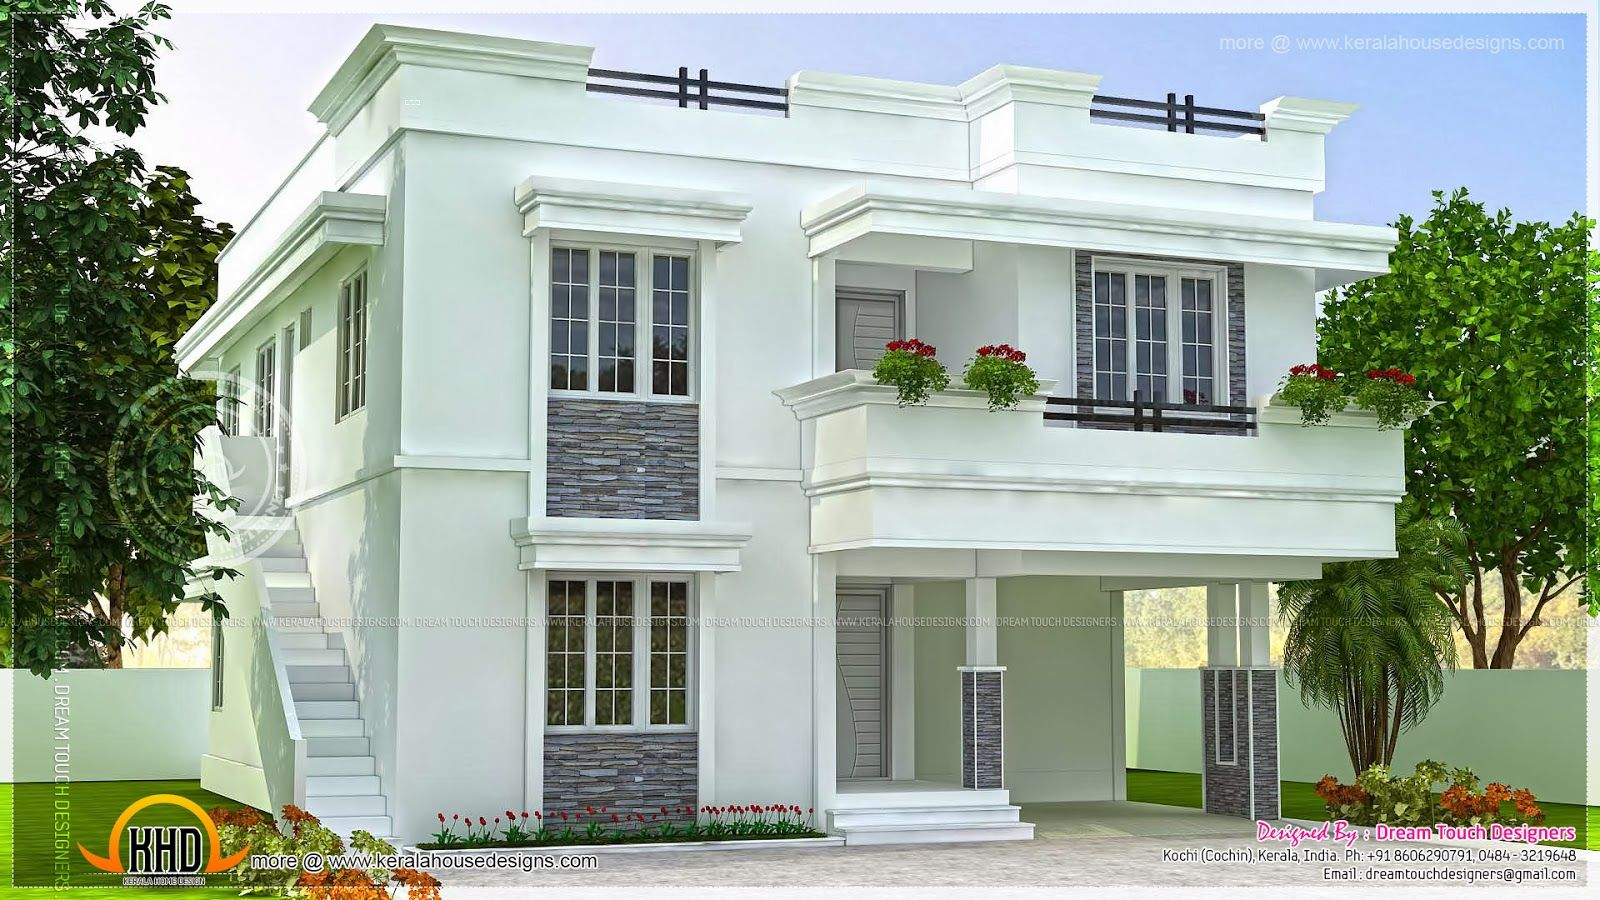 Modern Beautiful Home Modern Beautiful Home Design Indian House Plans Concrete Prefab Homes